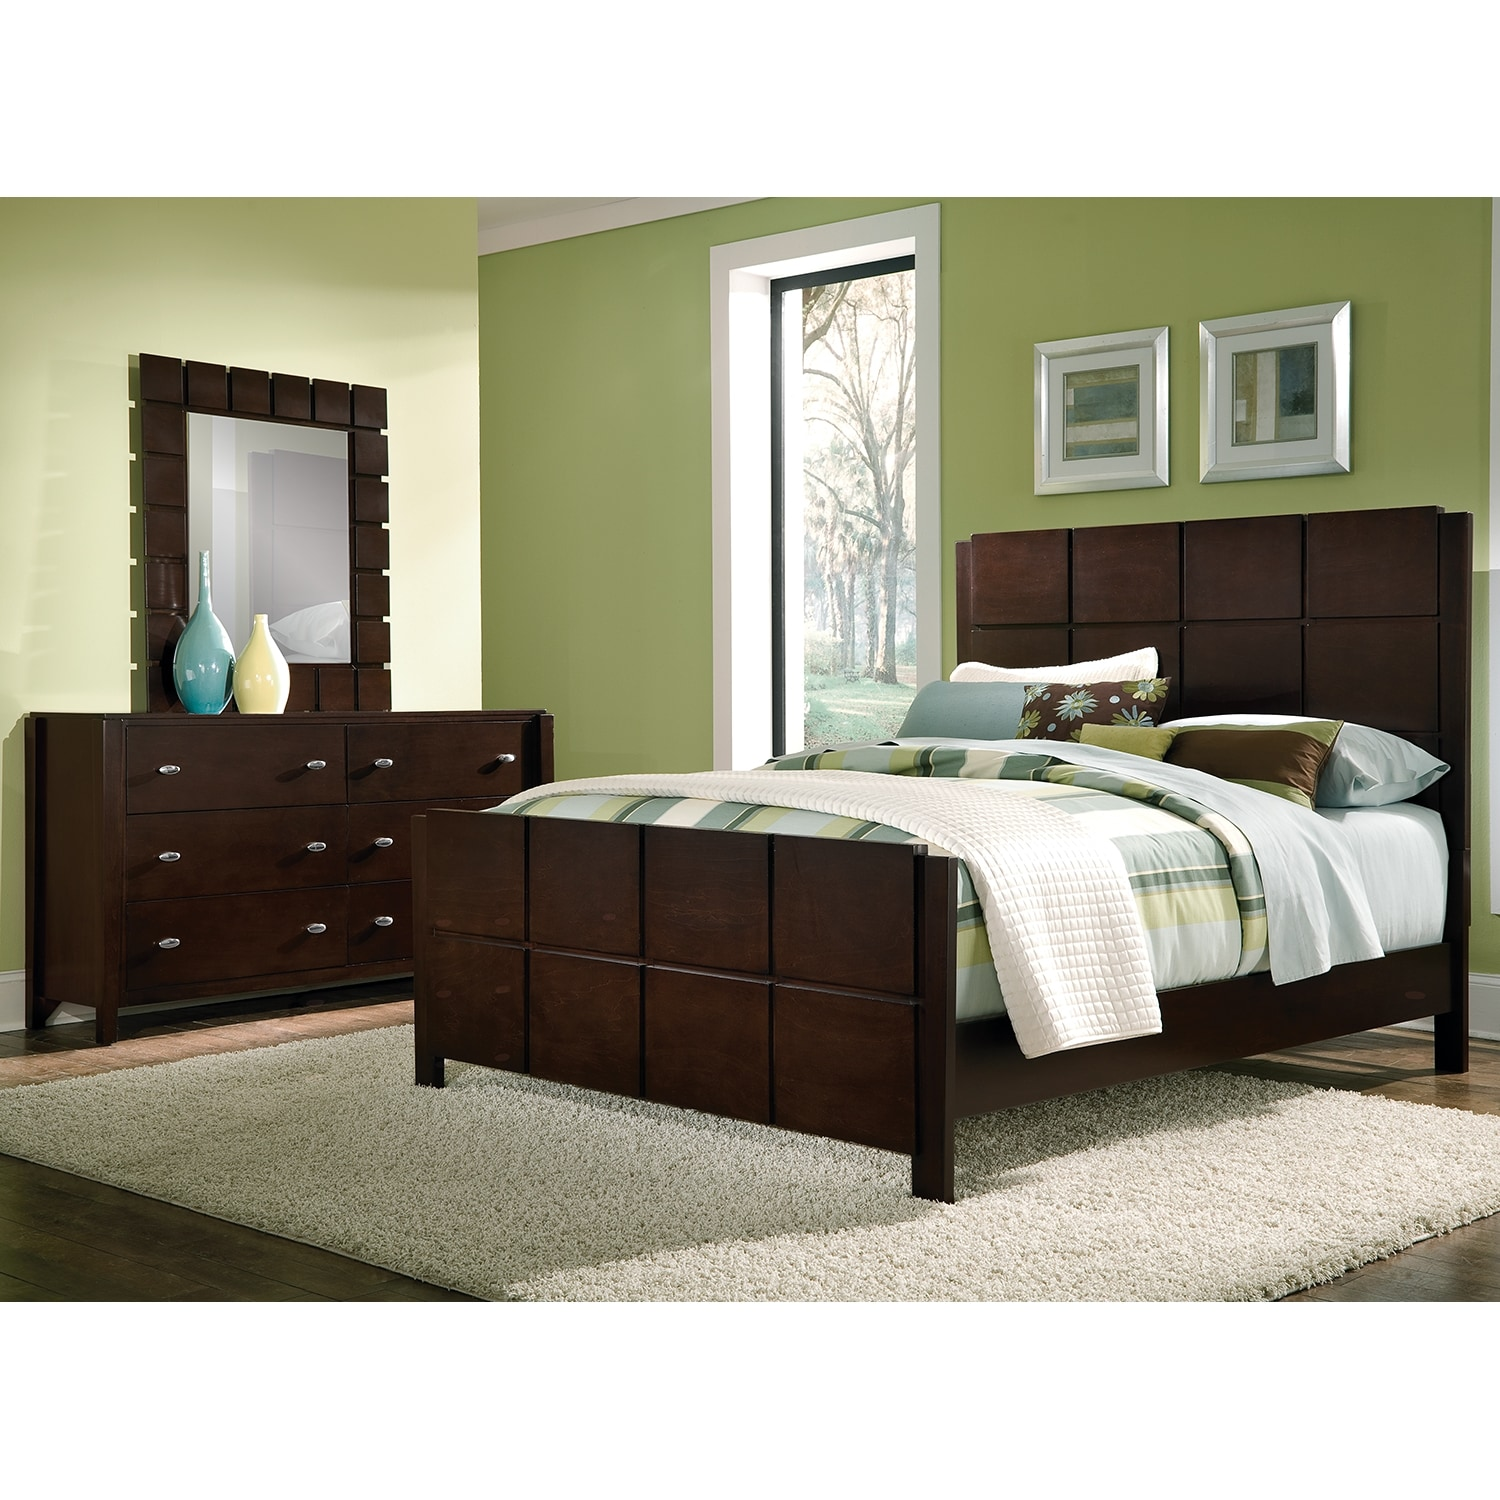 Mosaic 5 pc queen bedroom american signature furniture for M bedroom furniture